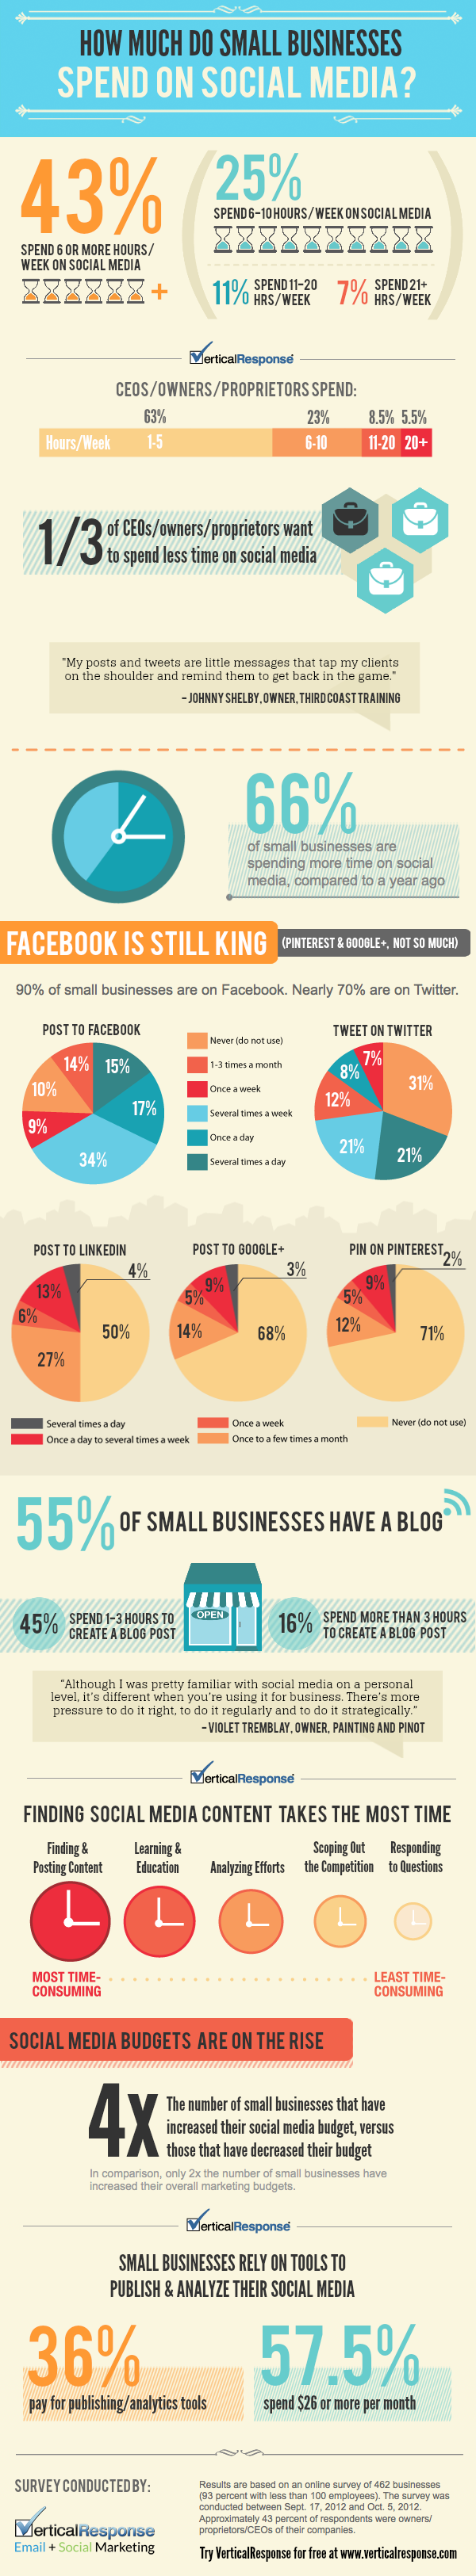 how_much_do_small_businesses_spend_on_social_media.png